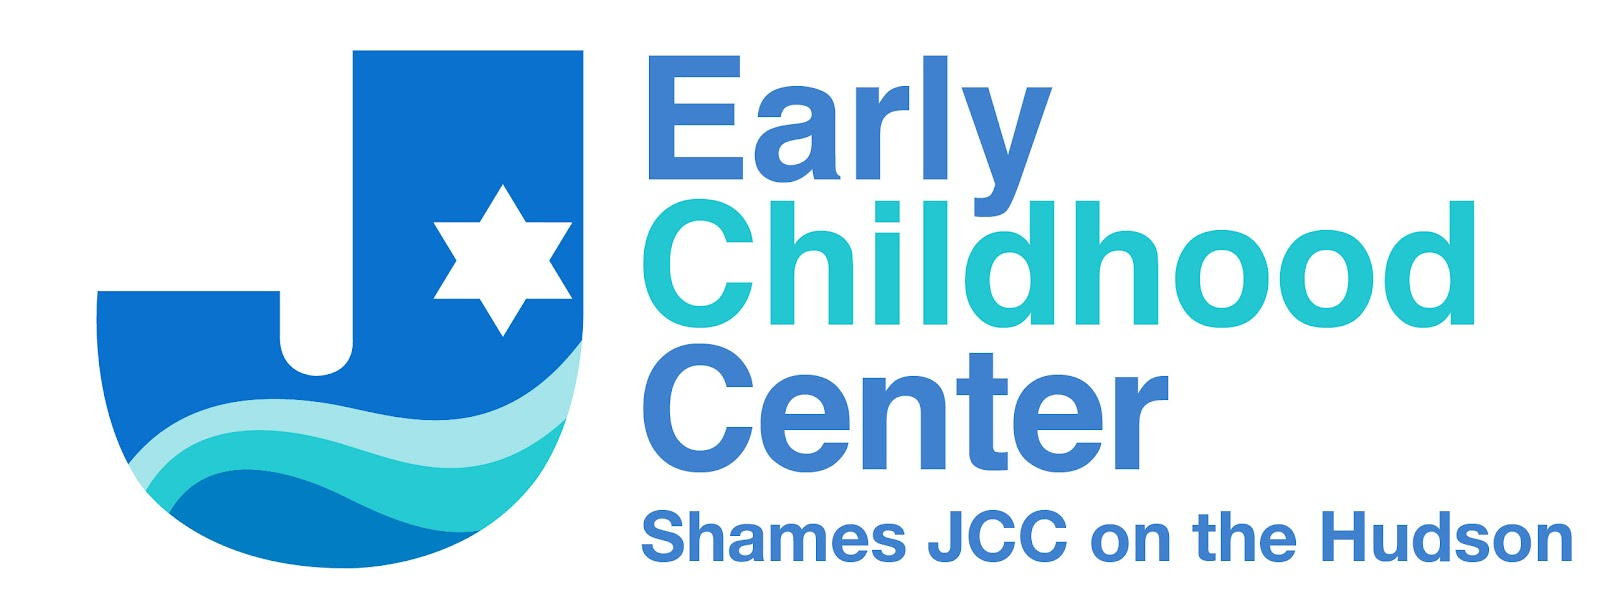 The Shames JCC on the Hudson Early Childhood Center, River Friends Day Camp (ages 3 – 6), and Camp Twelve Trails (grades K – 9) -